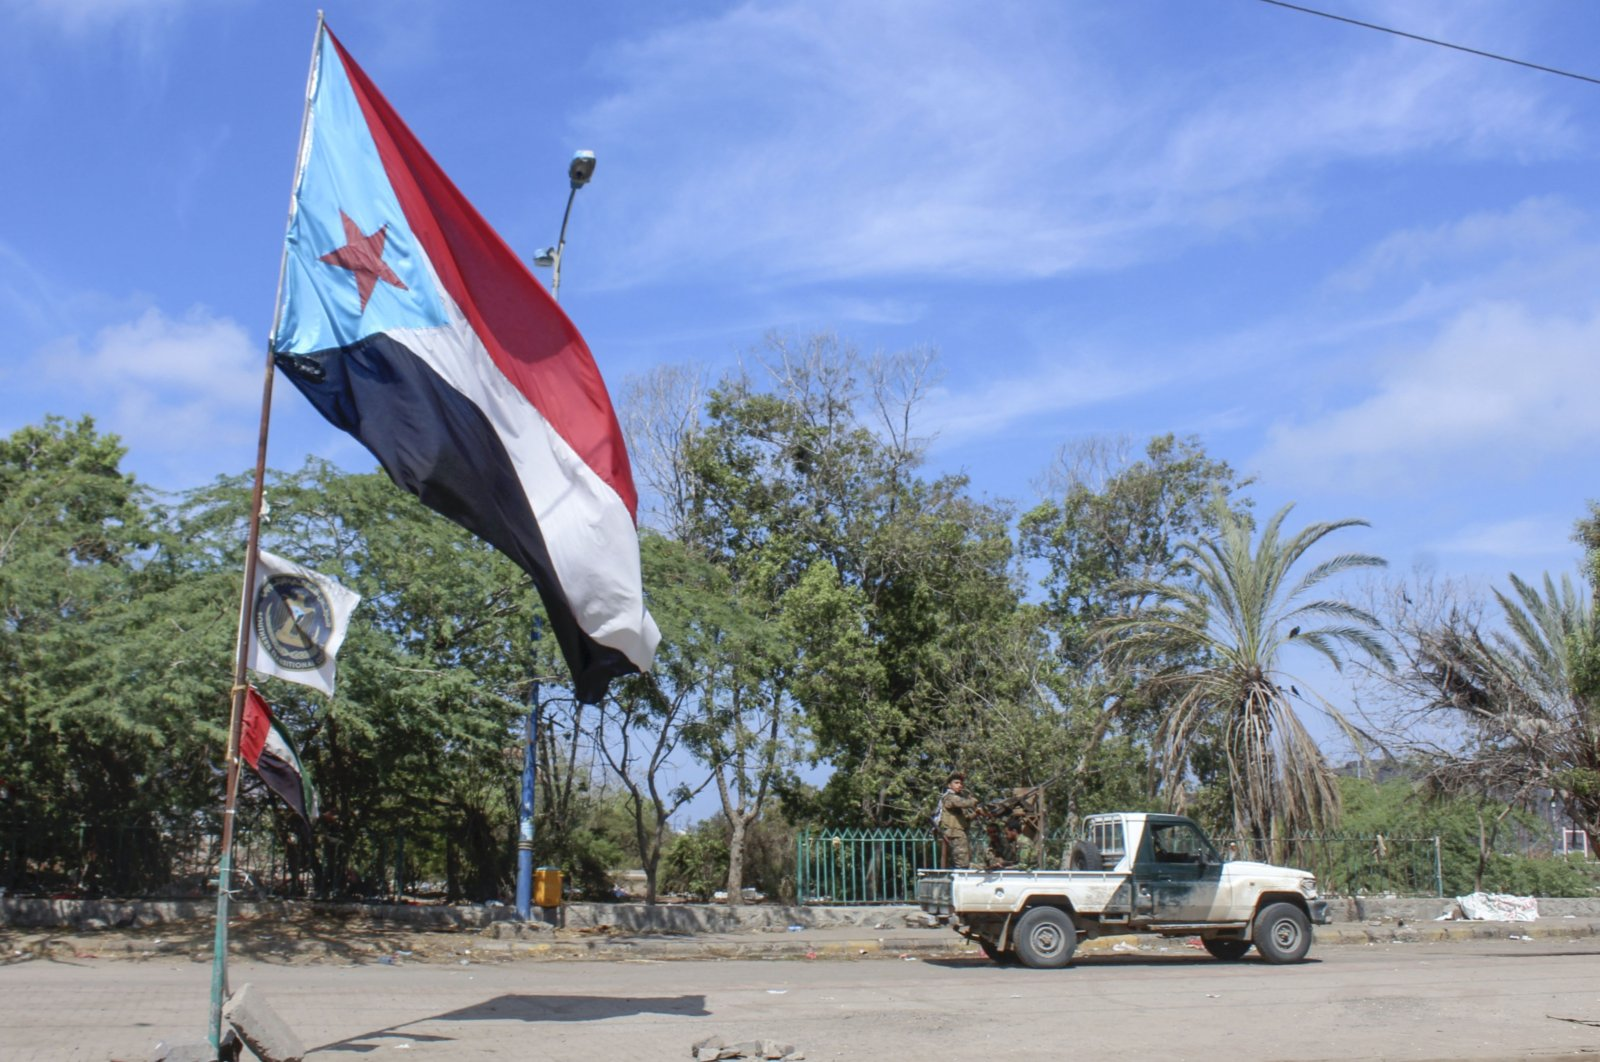 Fighters with Yemen's Southern Transitional Council (STC) drive a vehicle past a separatist flag (the old flag of South Yemen) as they deploy in the southern city of Aden, April 26, 2020. (AFP Photo)